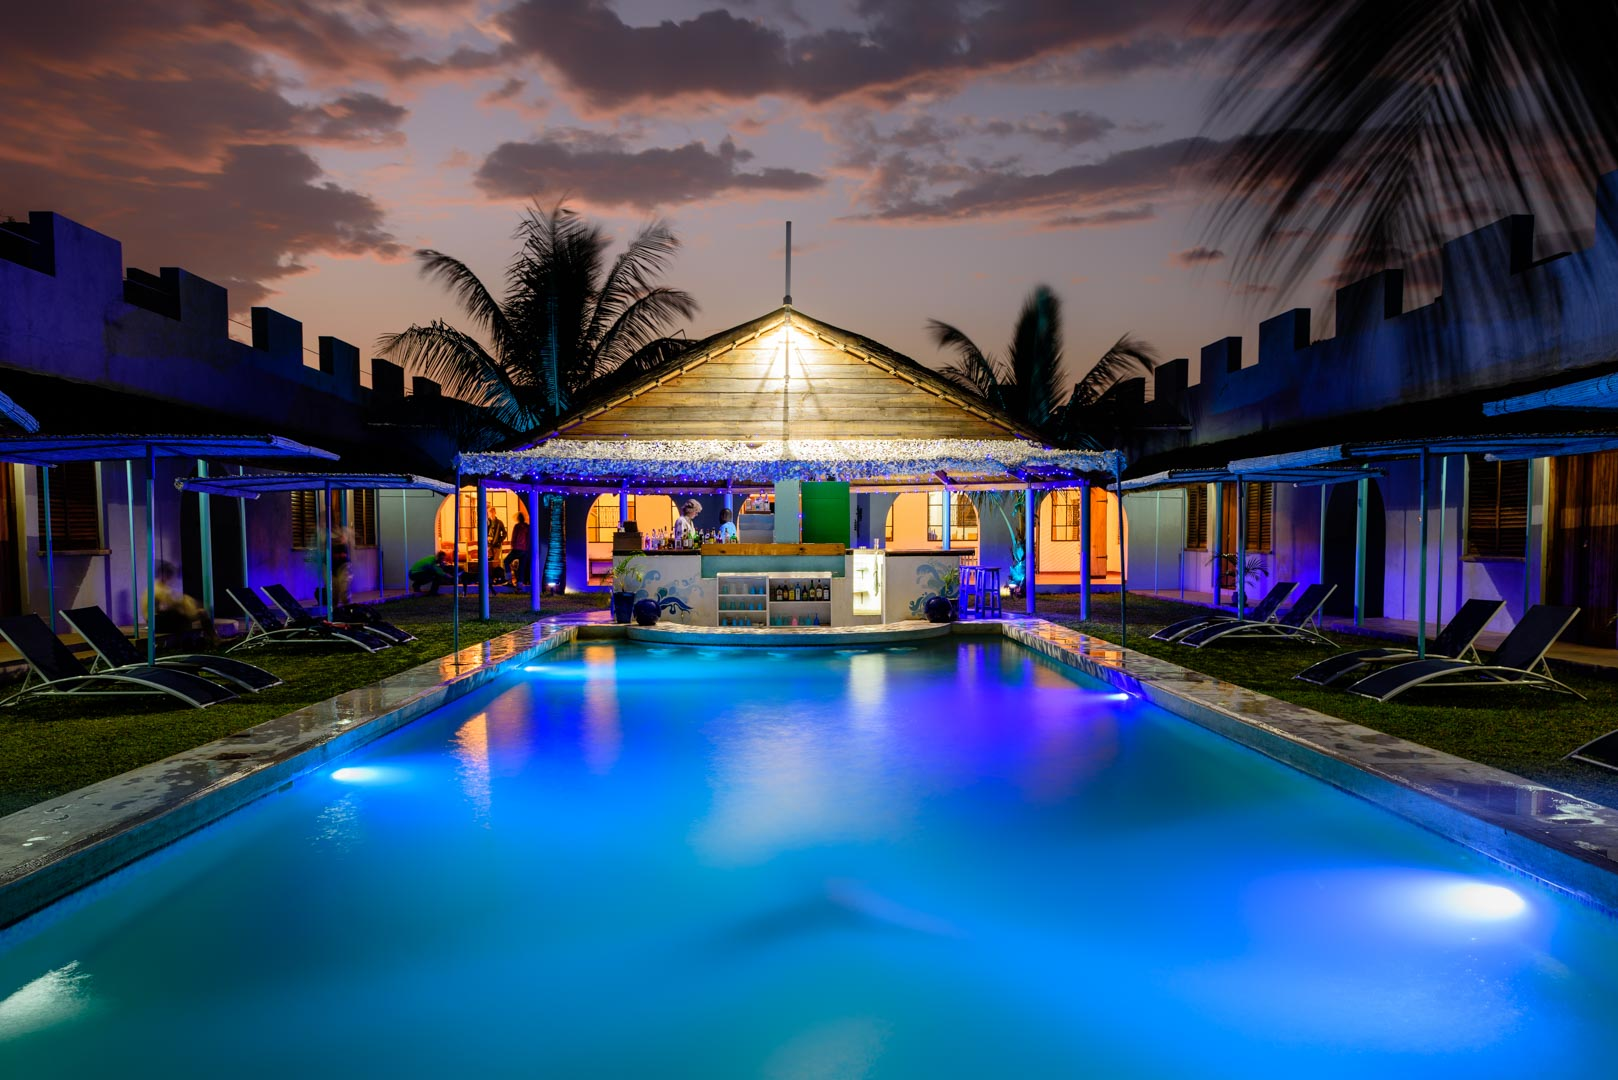 Night Time by the Pool